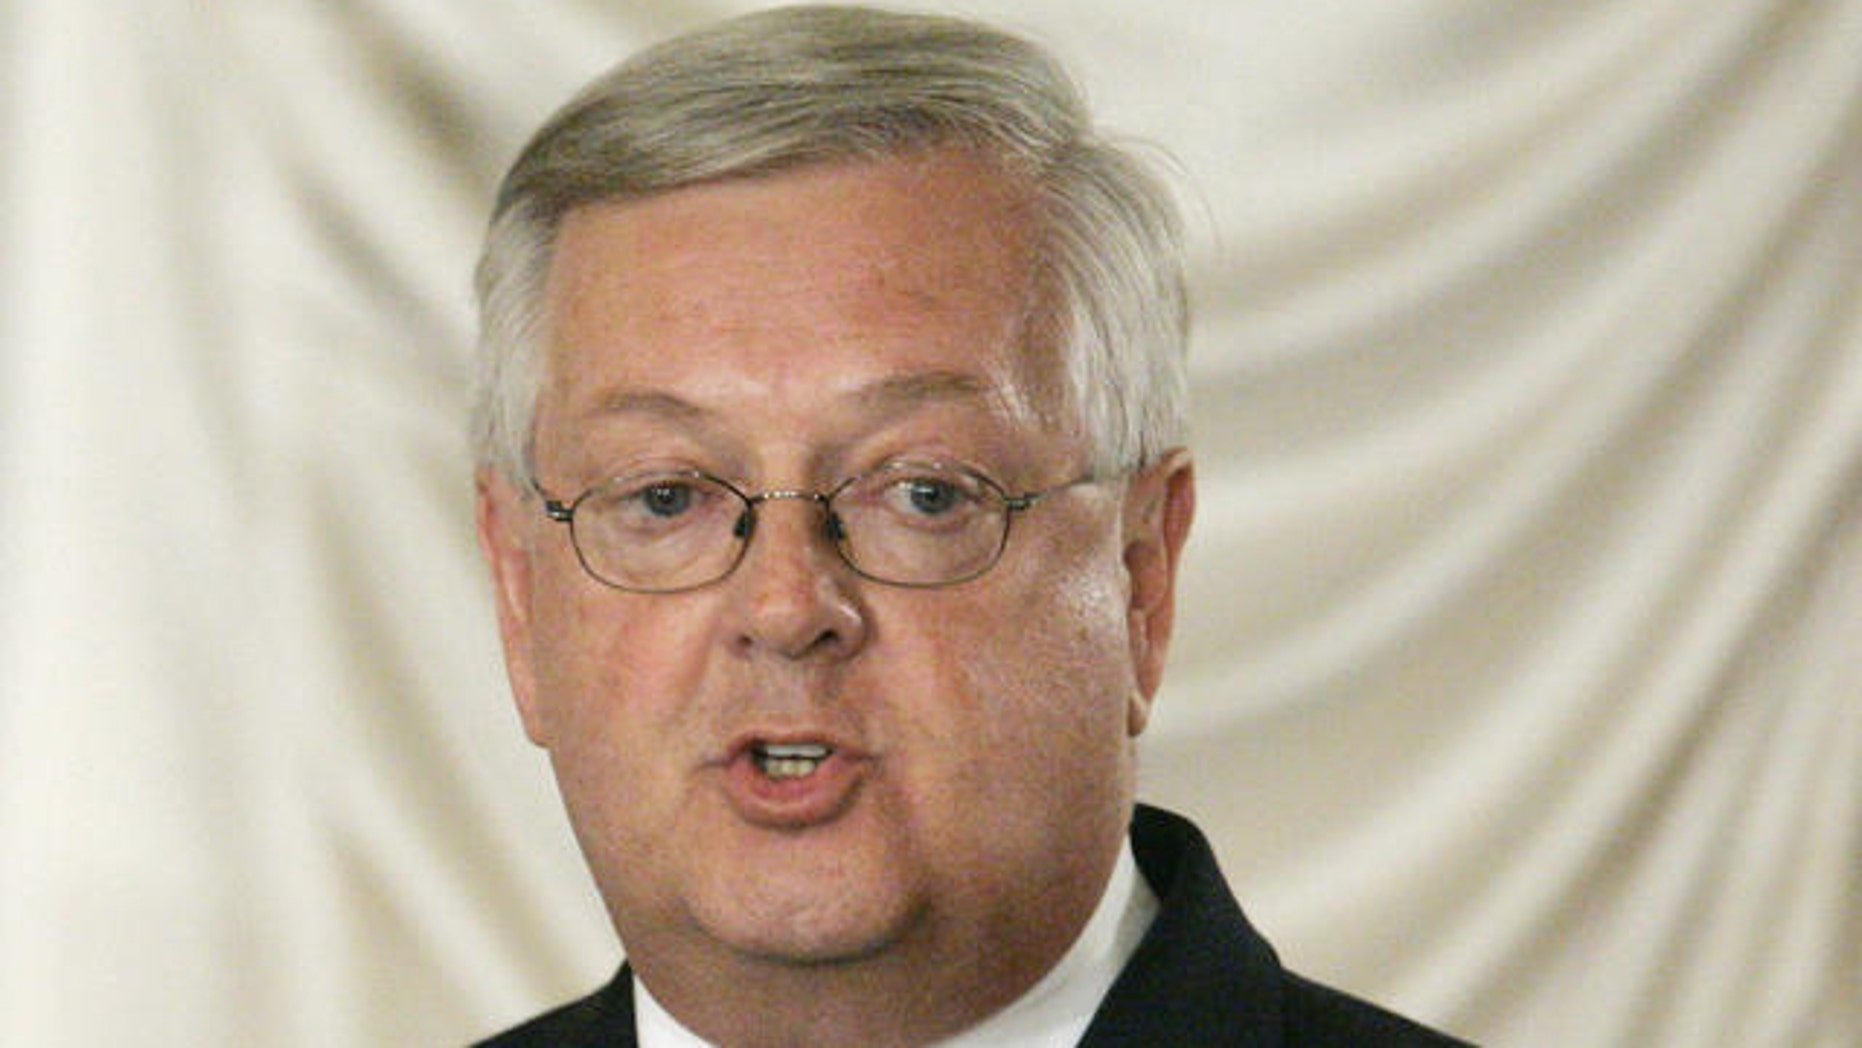 Shown here is former Rep. Curt Weldon.